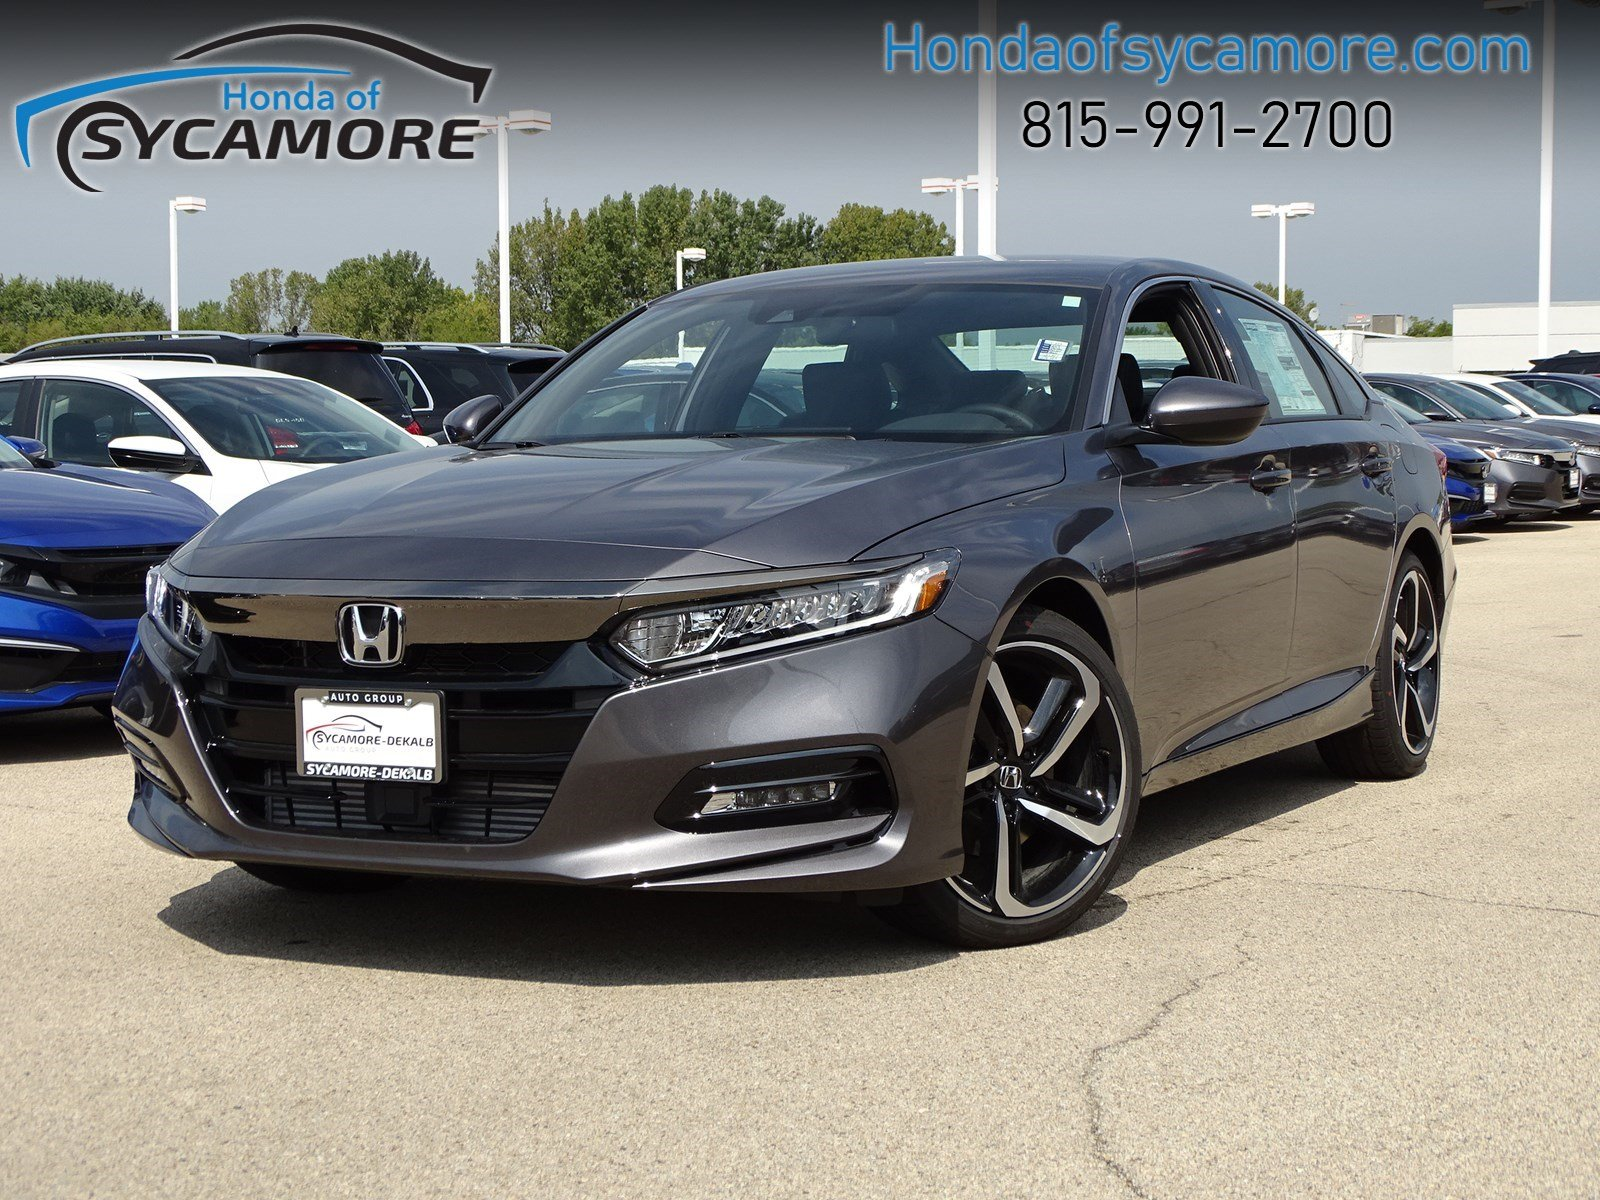 Honda Accord Carplay Beautiful New 2019 Honda Accord Sedan Sport 1 5t Fwd 4dr Car